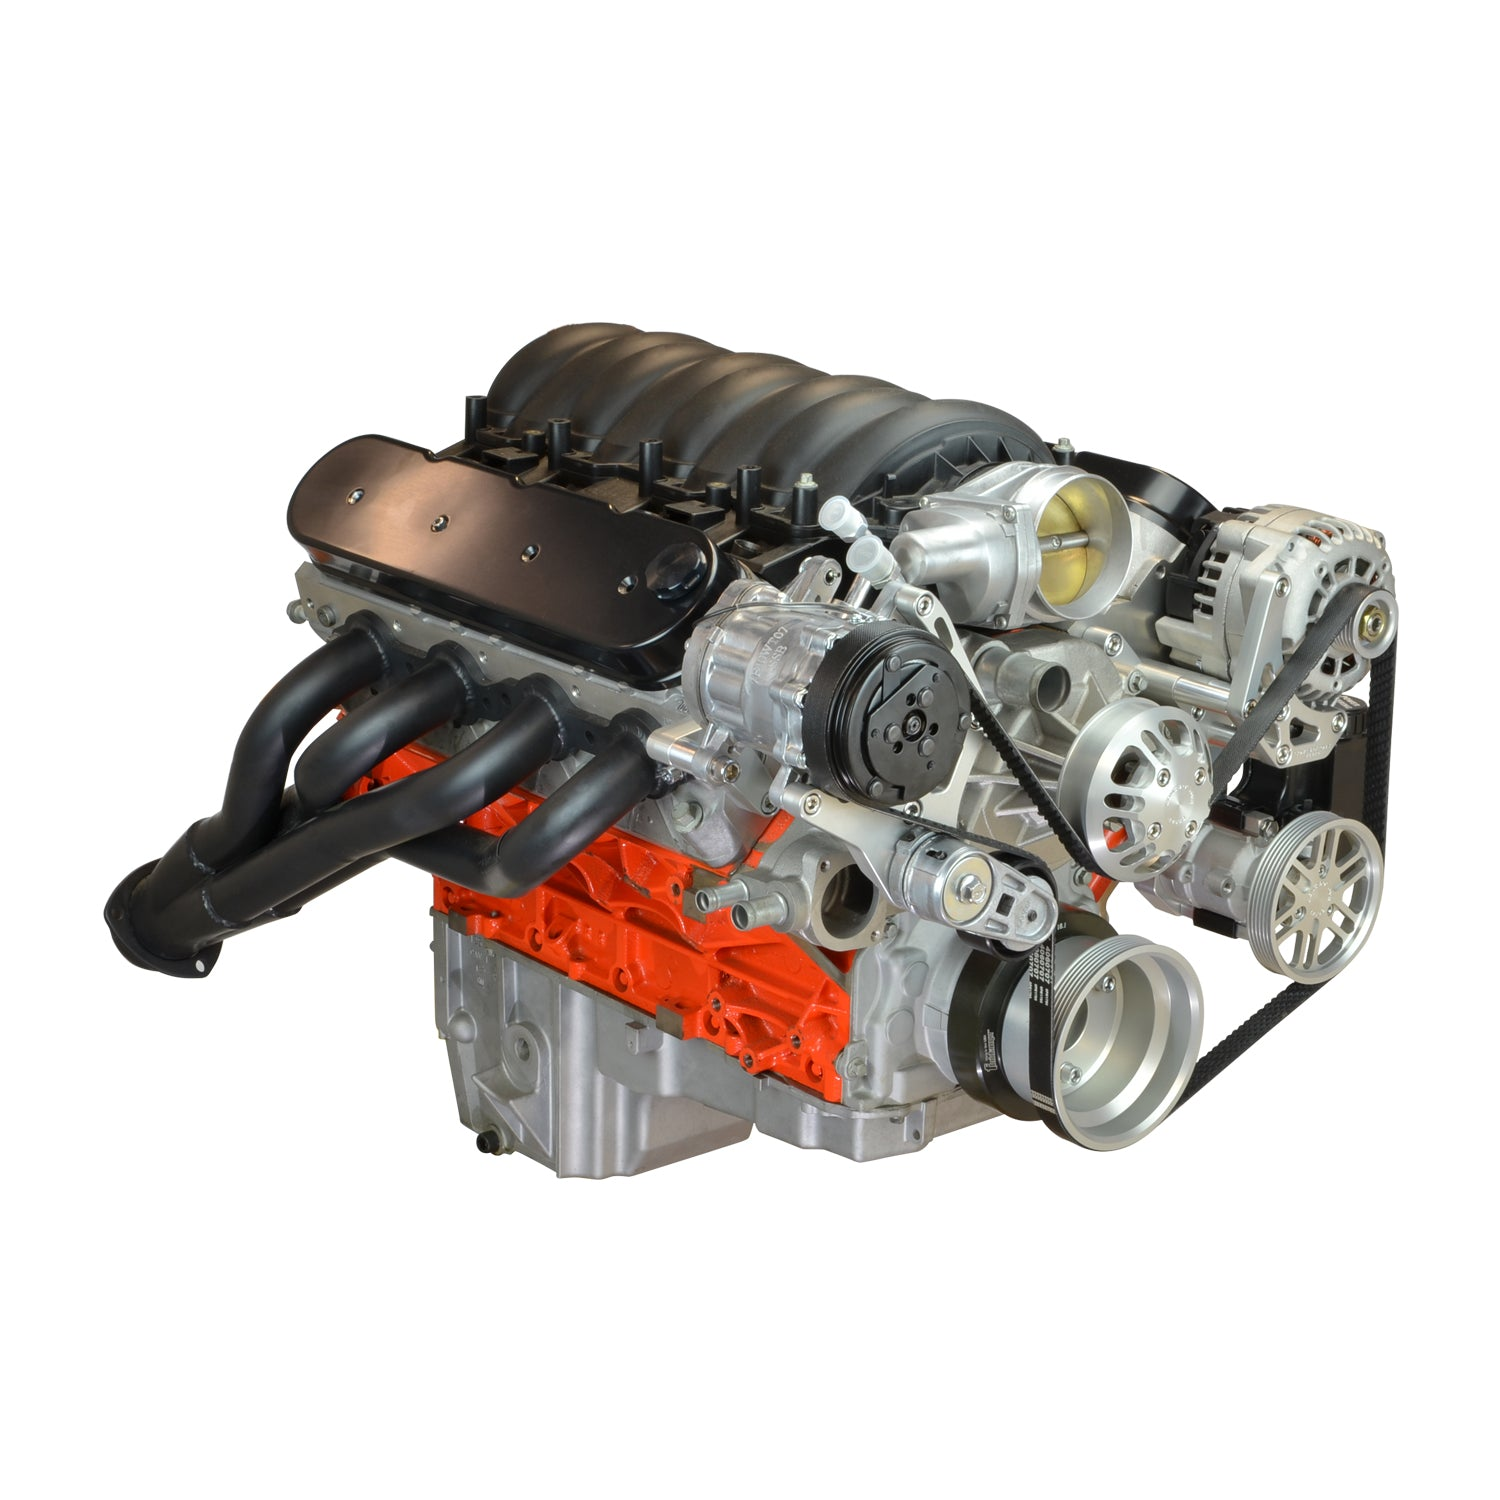 Chevy LS Driver Series Kit with Alternator, A/C and Power Steering